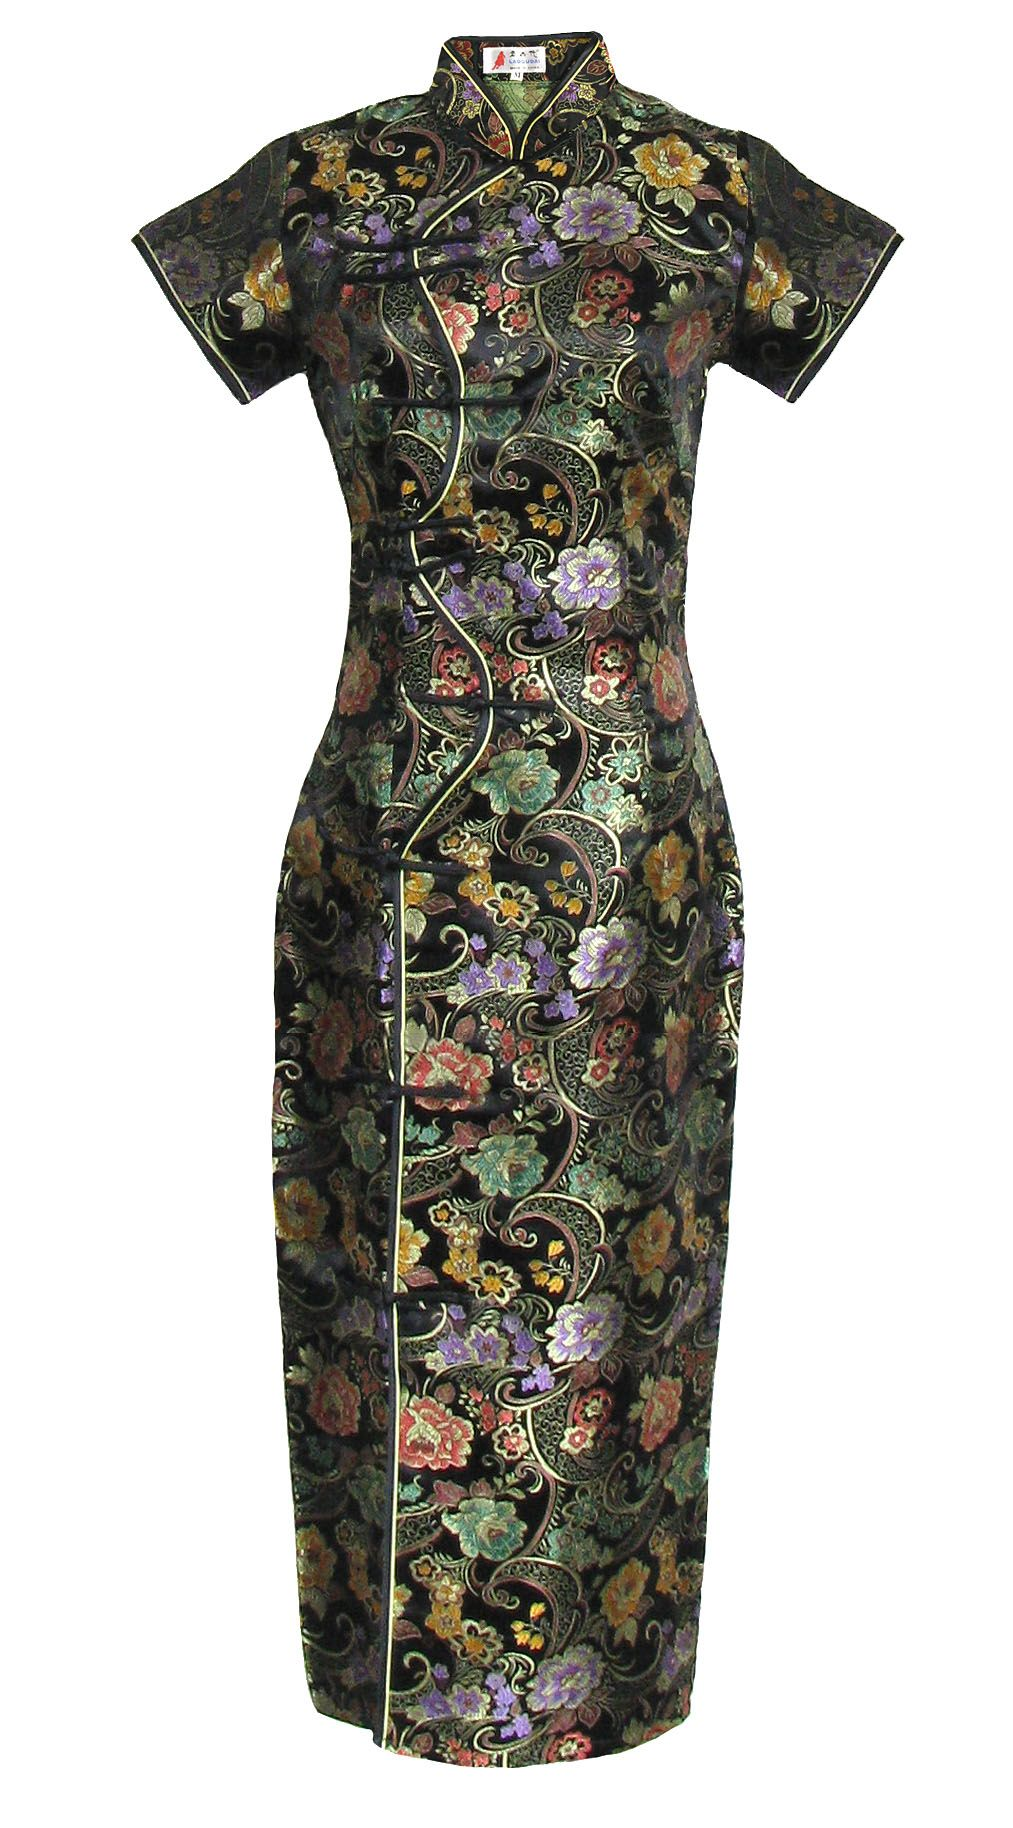 Robe Chinoise Longue Noire A Manches Asian Outfits Clothes Design Qipao Dress